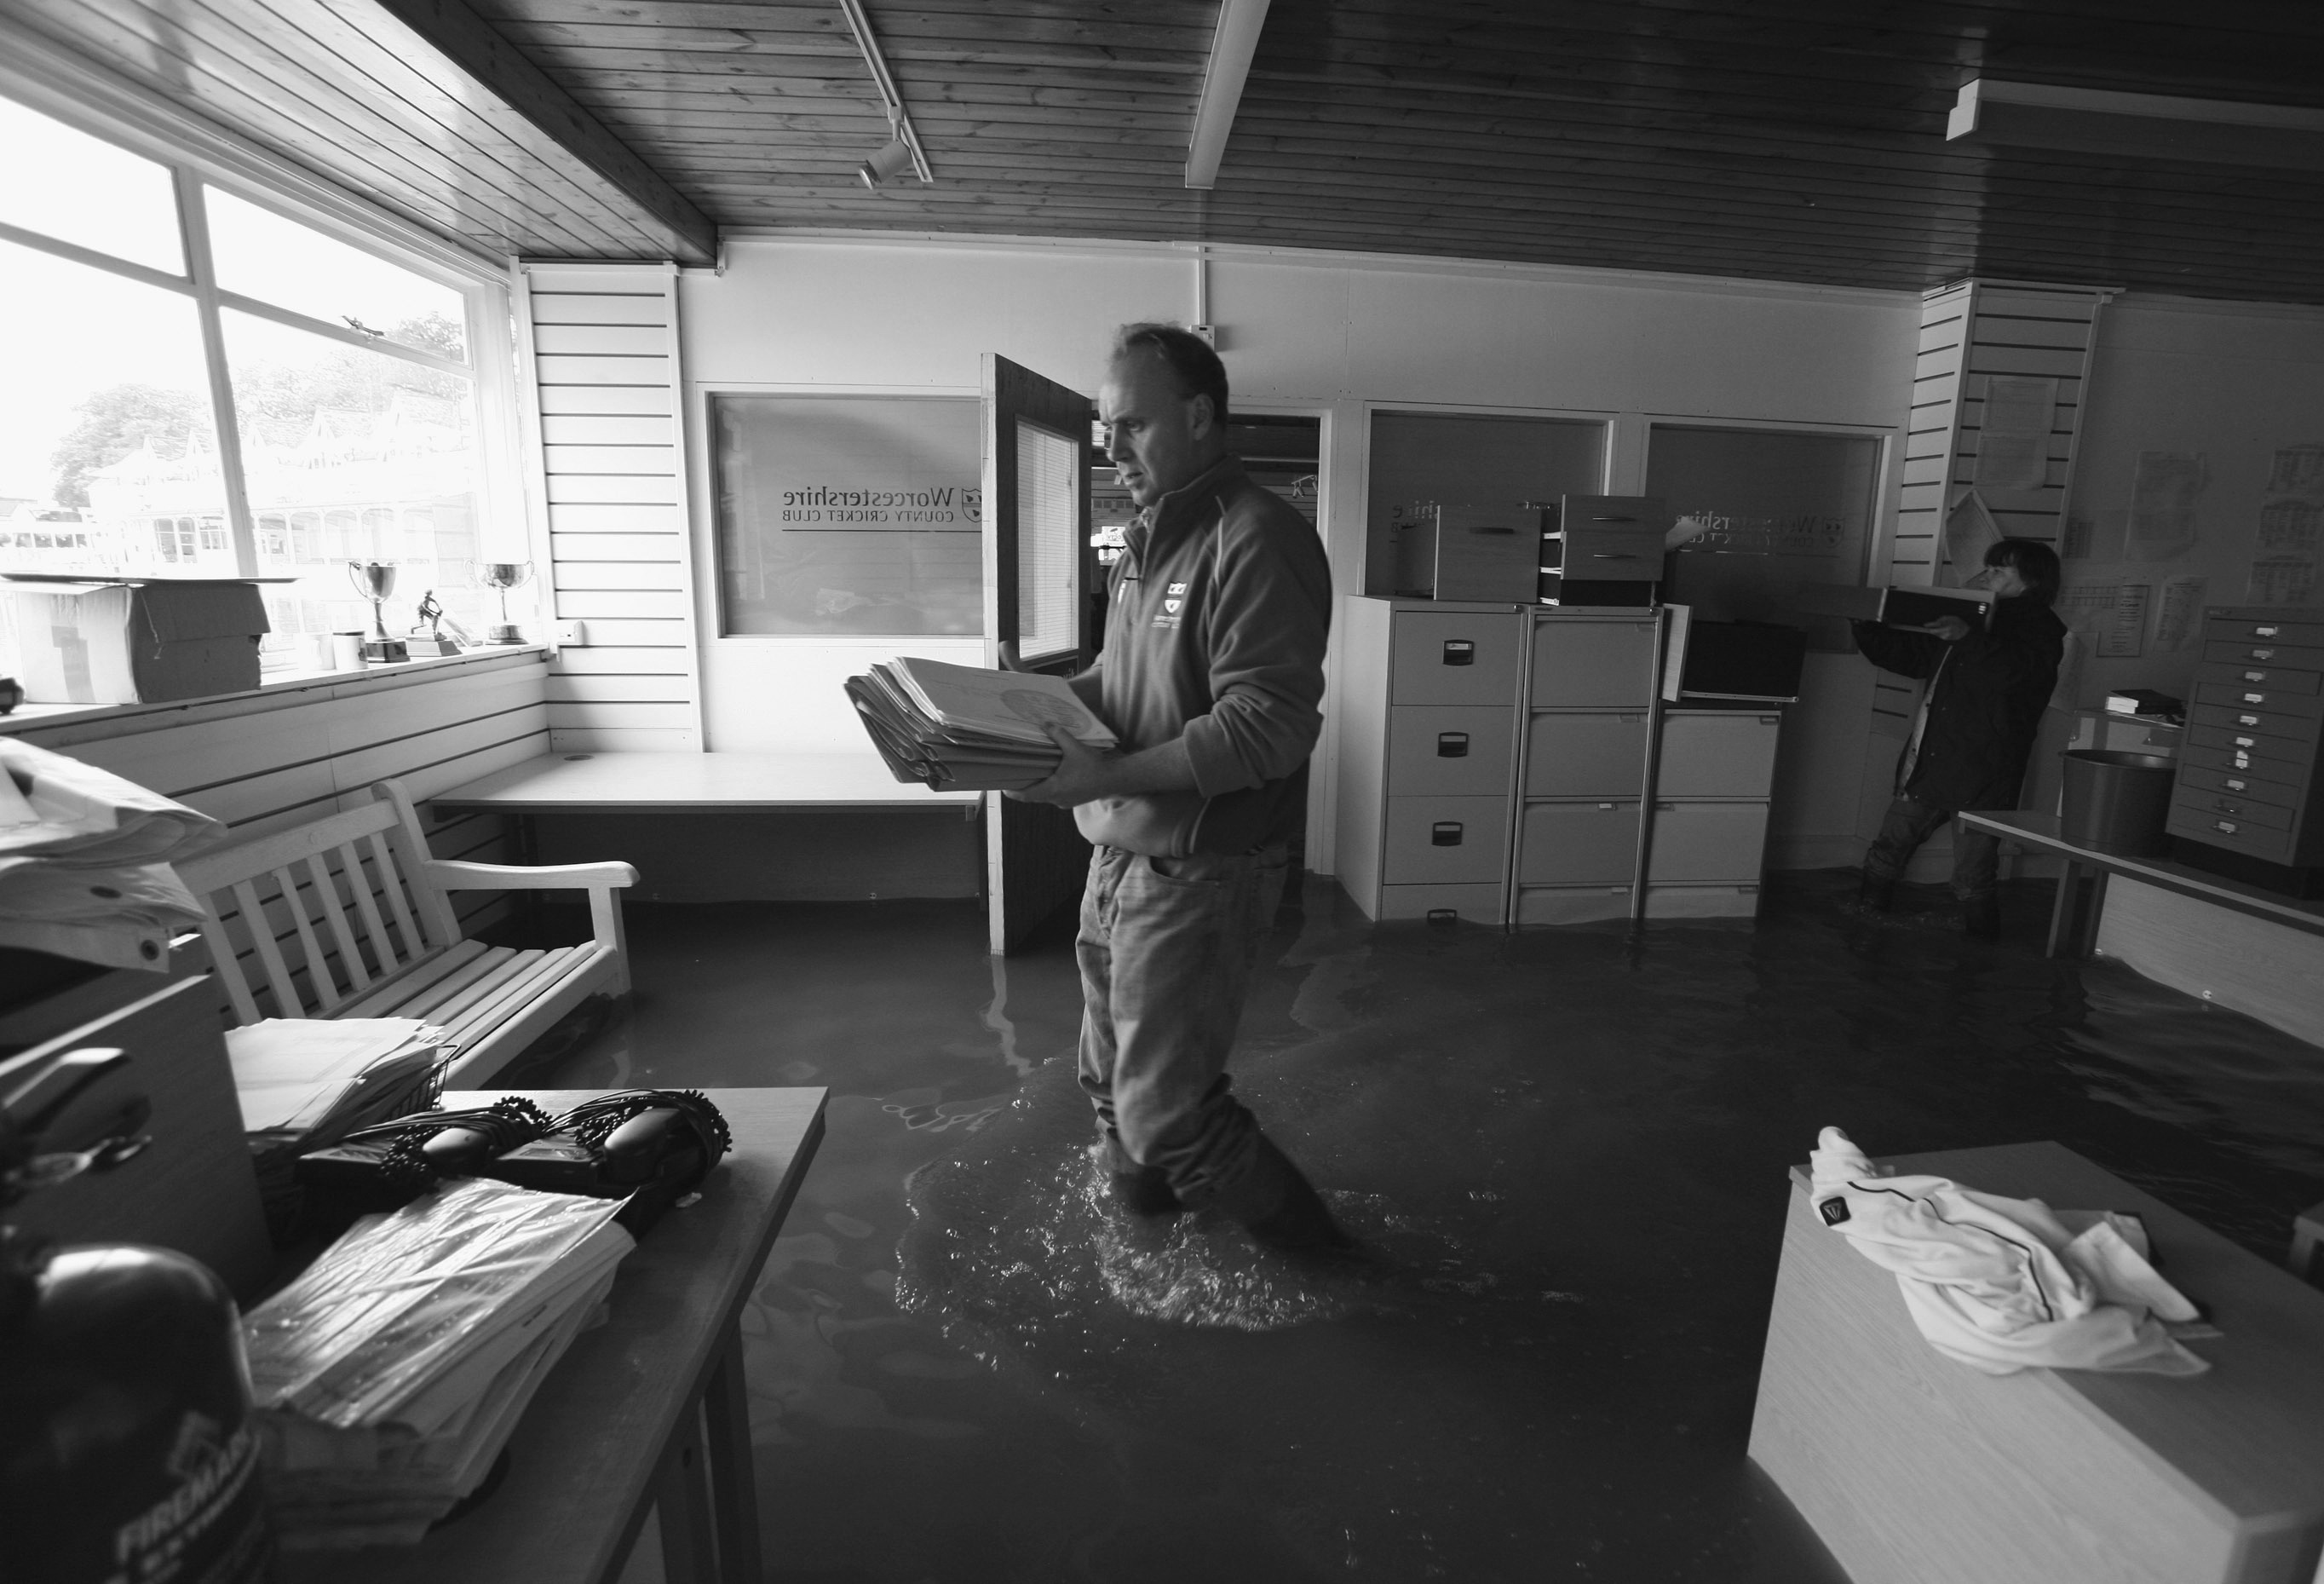 man clearing up after a flood